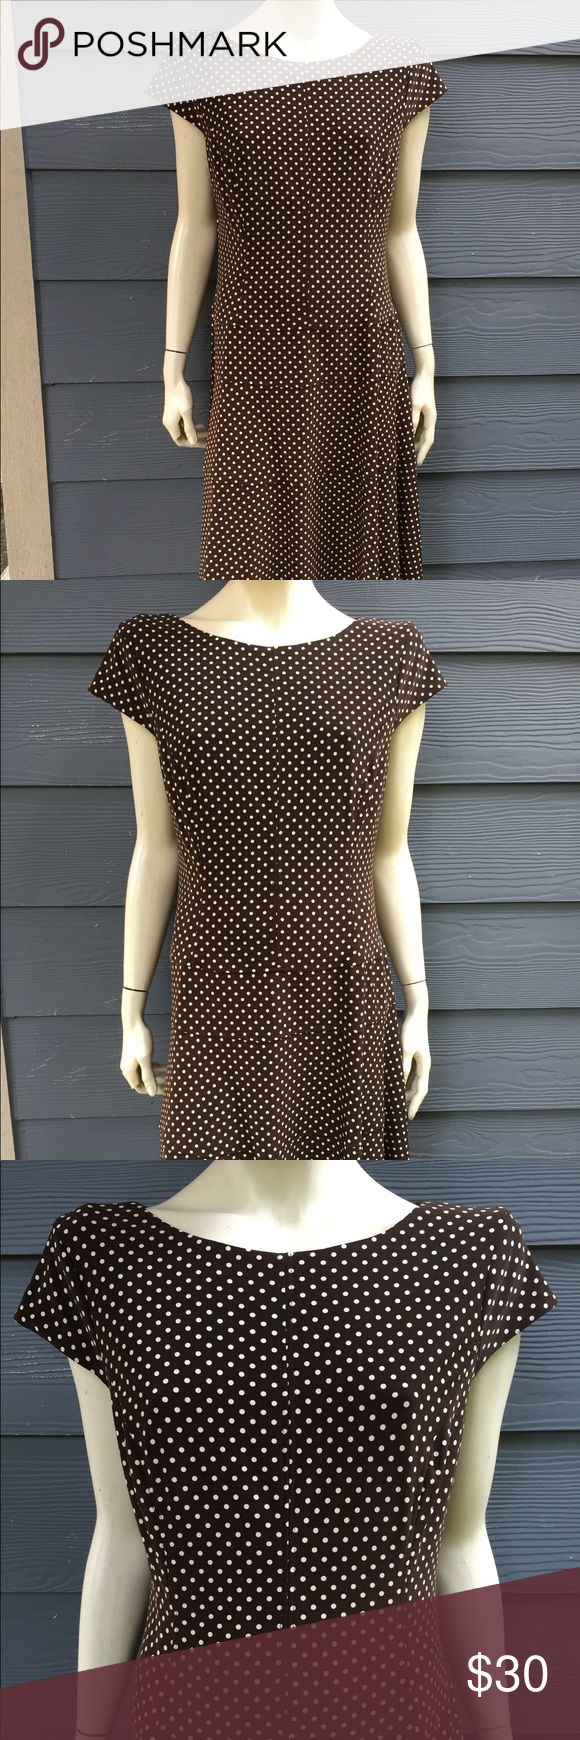 "Anne Klein Women's Dress Brown Ivory Stretch Sz 16 Anne Klein Women's Dress Brown Ivory Polka Dot Cap Sleeve Stretch Back Zip Top Lined Size 16  Measurements laying flat approximate: Armpit to armpit 20 3/4"", waist 18"", hips 23 1/2"", length 40"".  THIS GORGEOUS DRESS HAS BEEN GENTLY WORN AND OVERALL IN GREAT CONDITION!  NOTE:  PLEASE REVIEW MEASUREMENTS CAREFULLY BEFORE PURCHASING THIS ITEM SINCE SIZES SOME TIMES ARE DIFFERENT FROM BRAND TO BRAND. Anne Klein Dresses Midi"